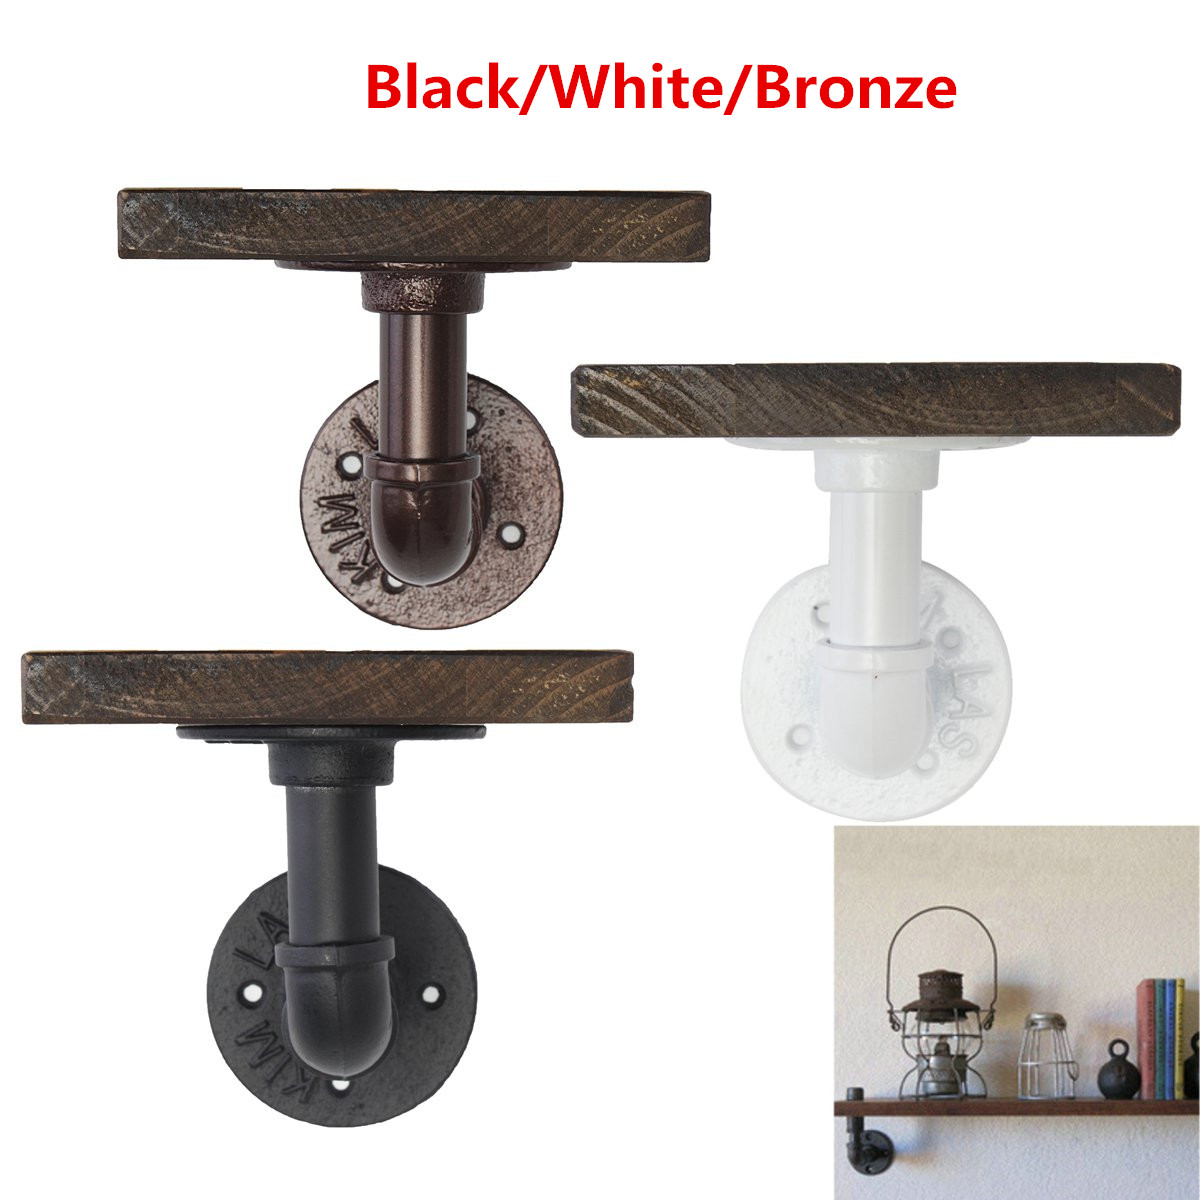 Bathroom Shelves Industrial Retro Iron Pipe Shelf Rack Wall Mount Display Holder Wood Storage With Single Flange HookBathroom Shelves Industrial Retro Iron Pipe Shelf Rack Wall Mount Display Holder Wood Storage With Single Flange Hook